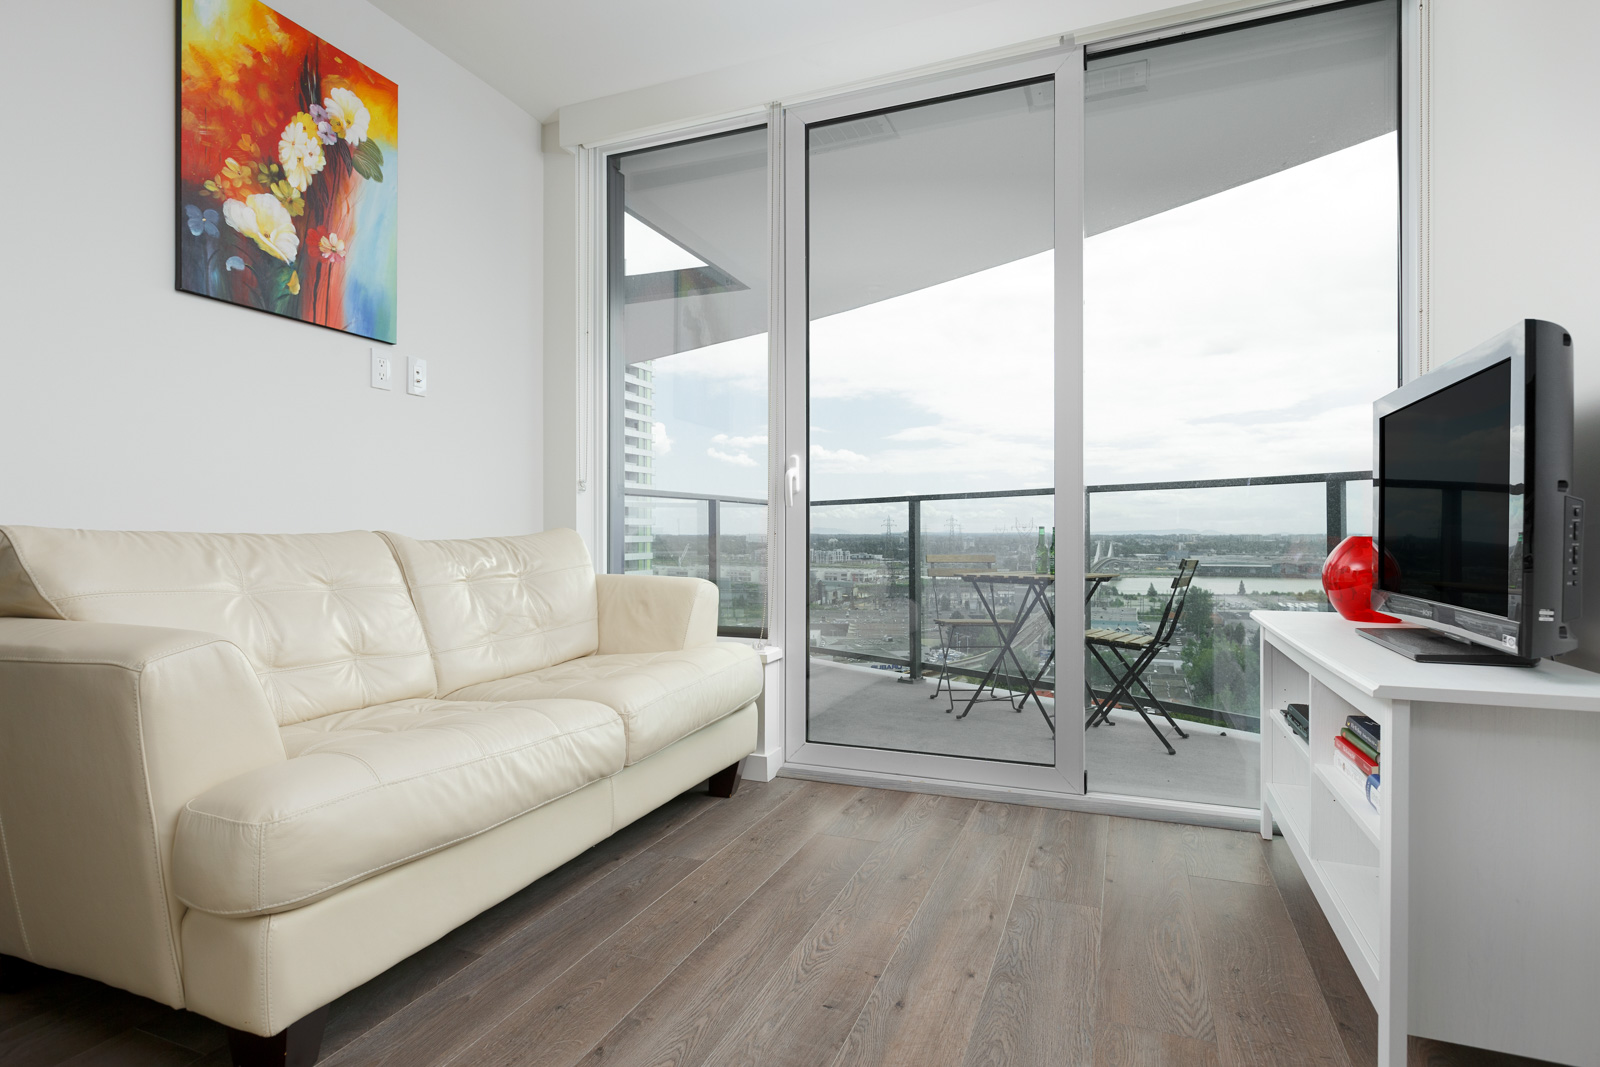 Living room inside luxury Vancouver condo with access to private balcony.